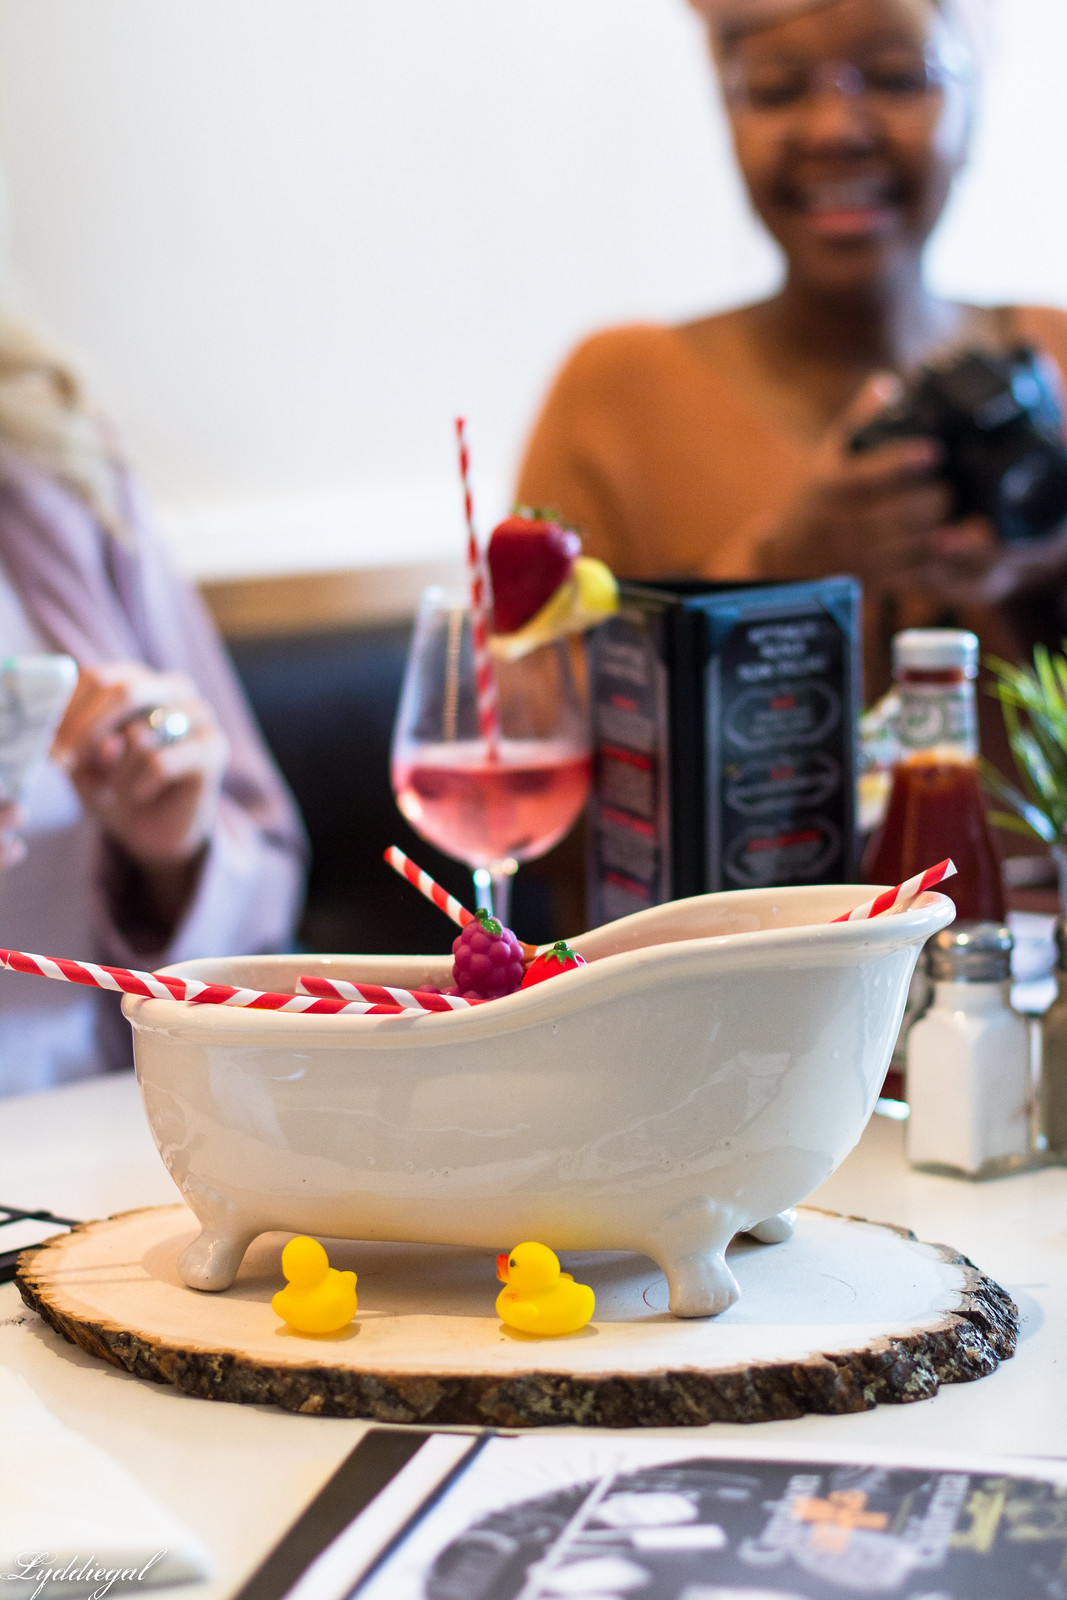 bathtub brunch punch at the place 2 be-2.jpg